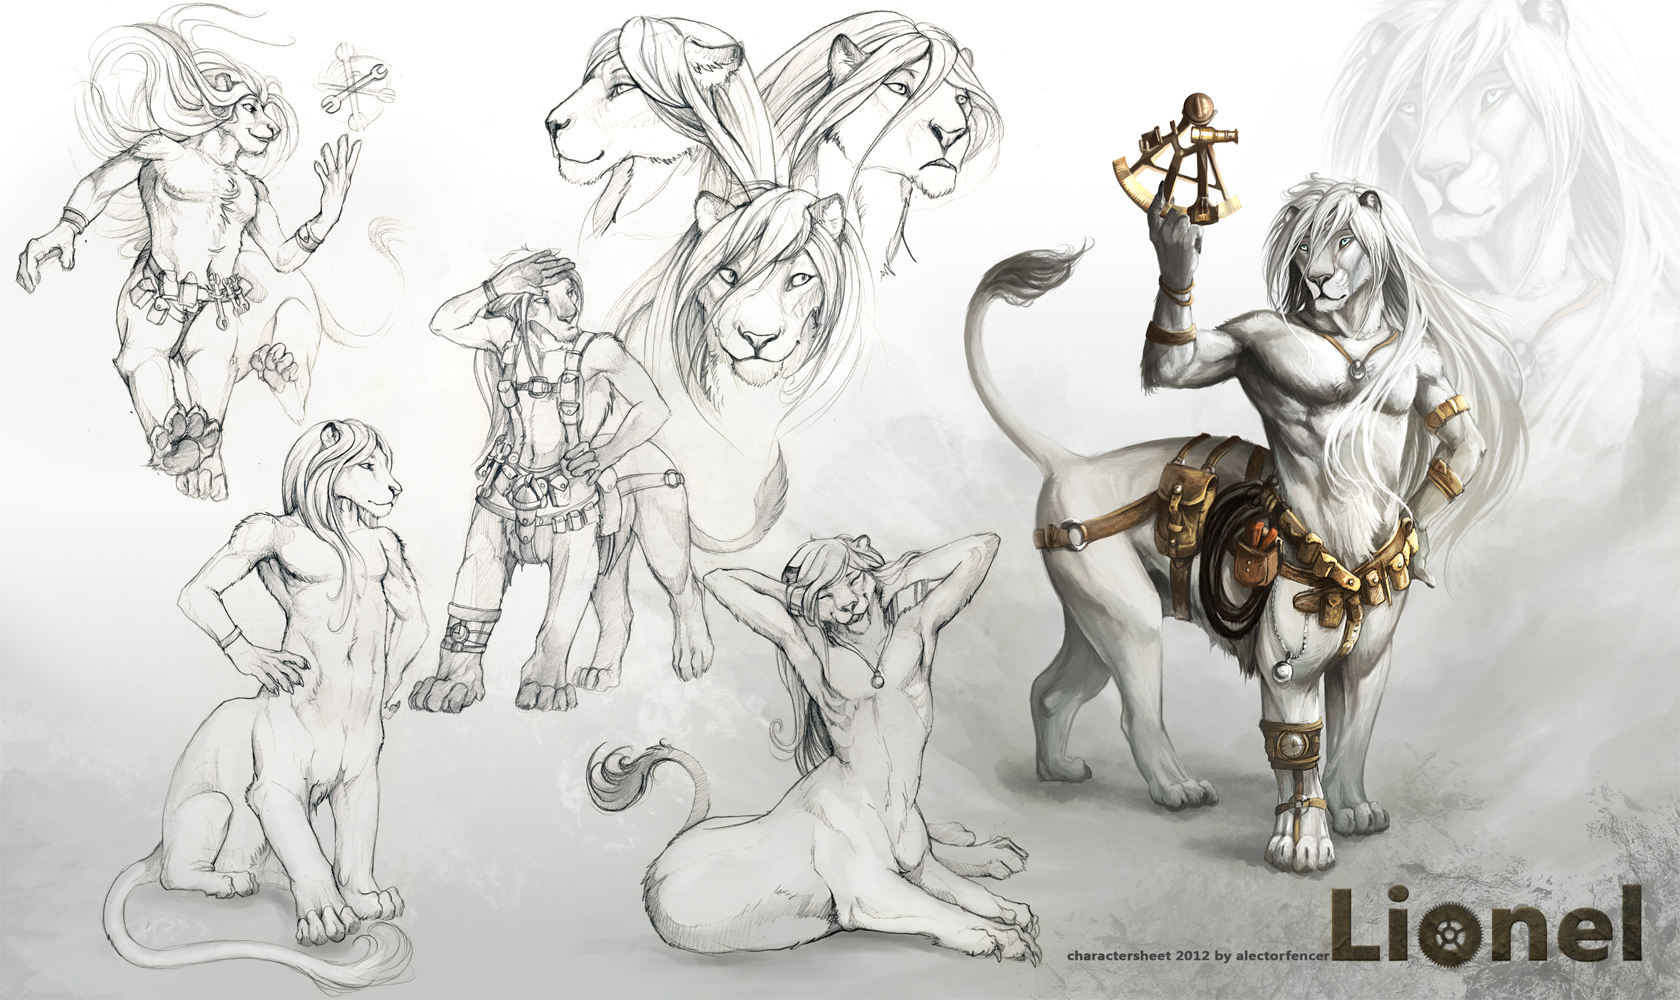 Lionel - Charactersheet by AlectorFencer